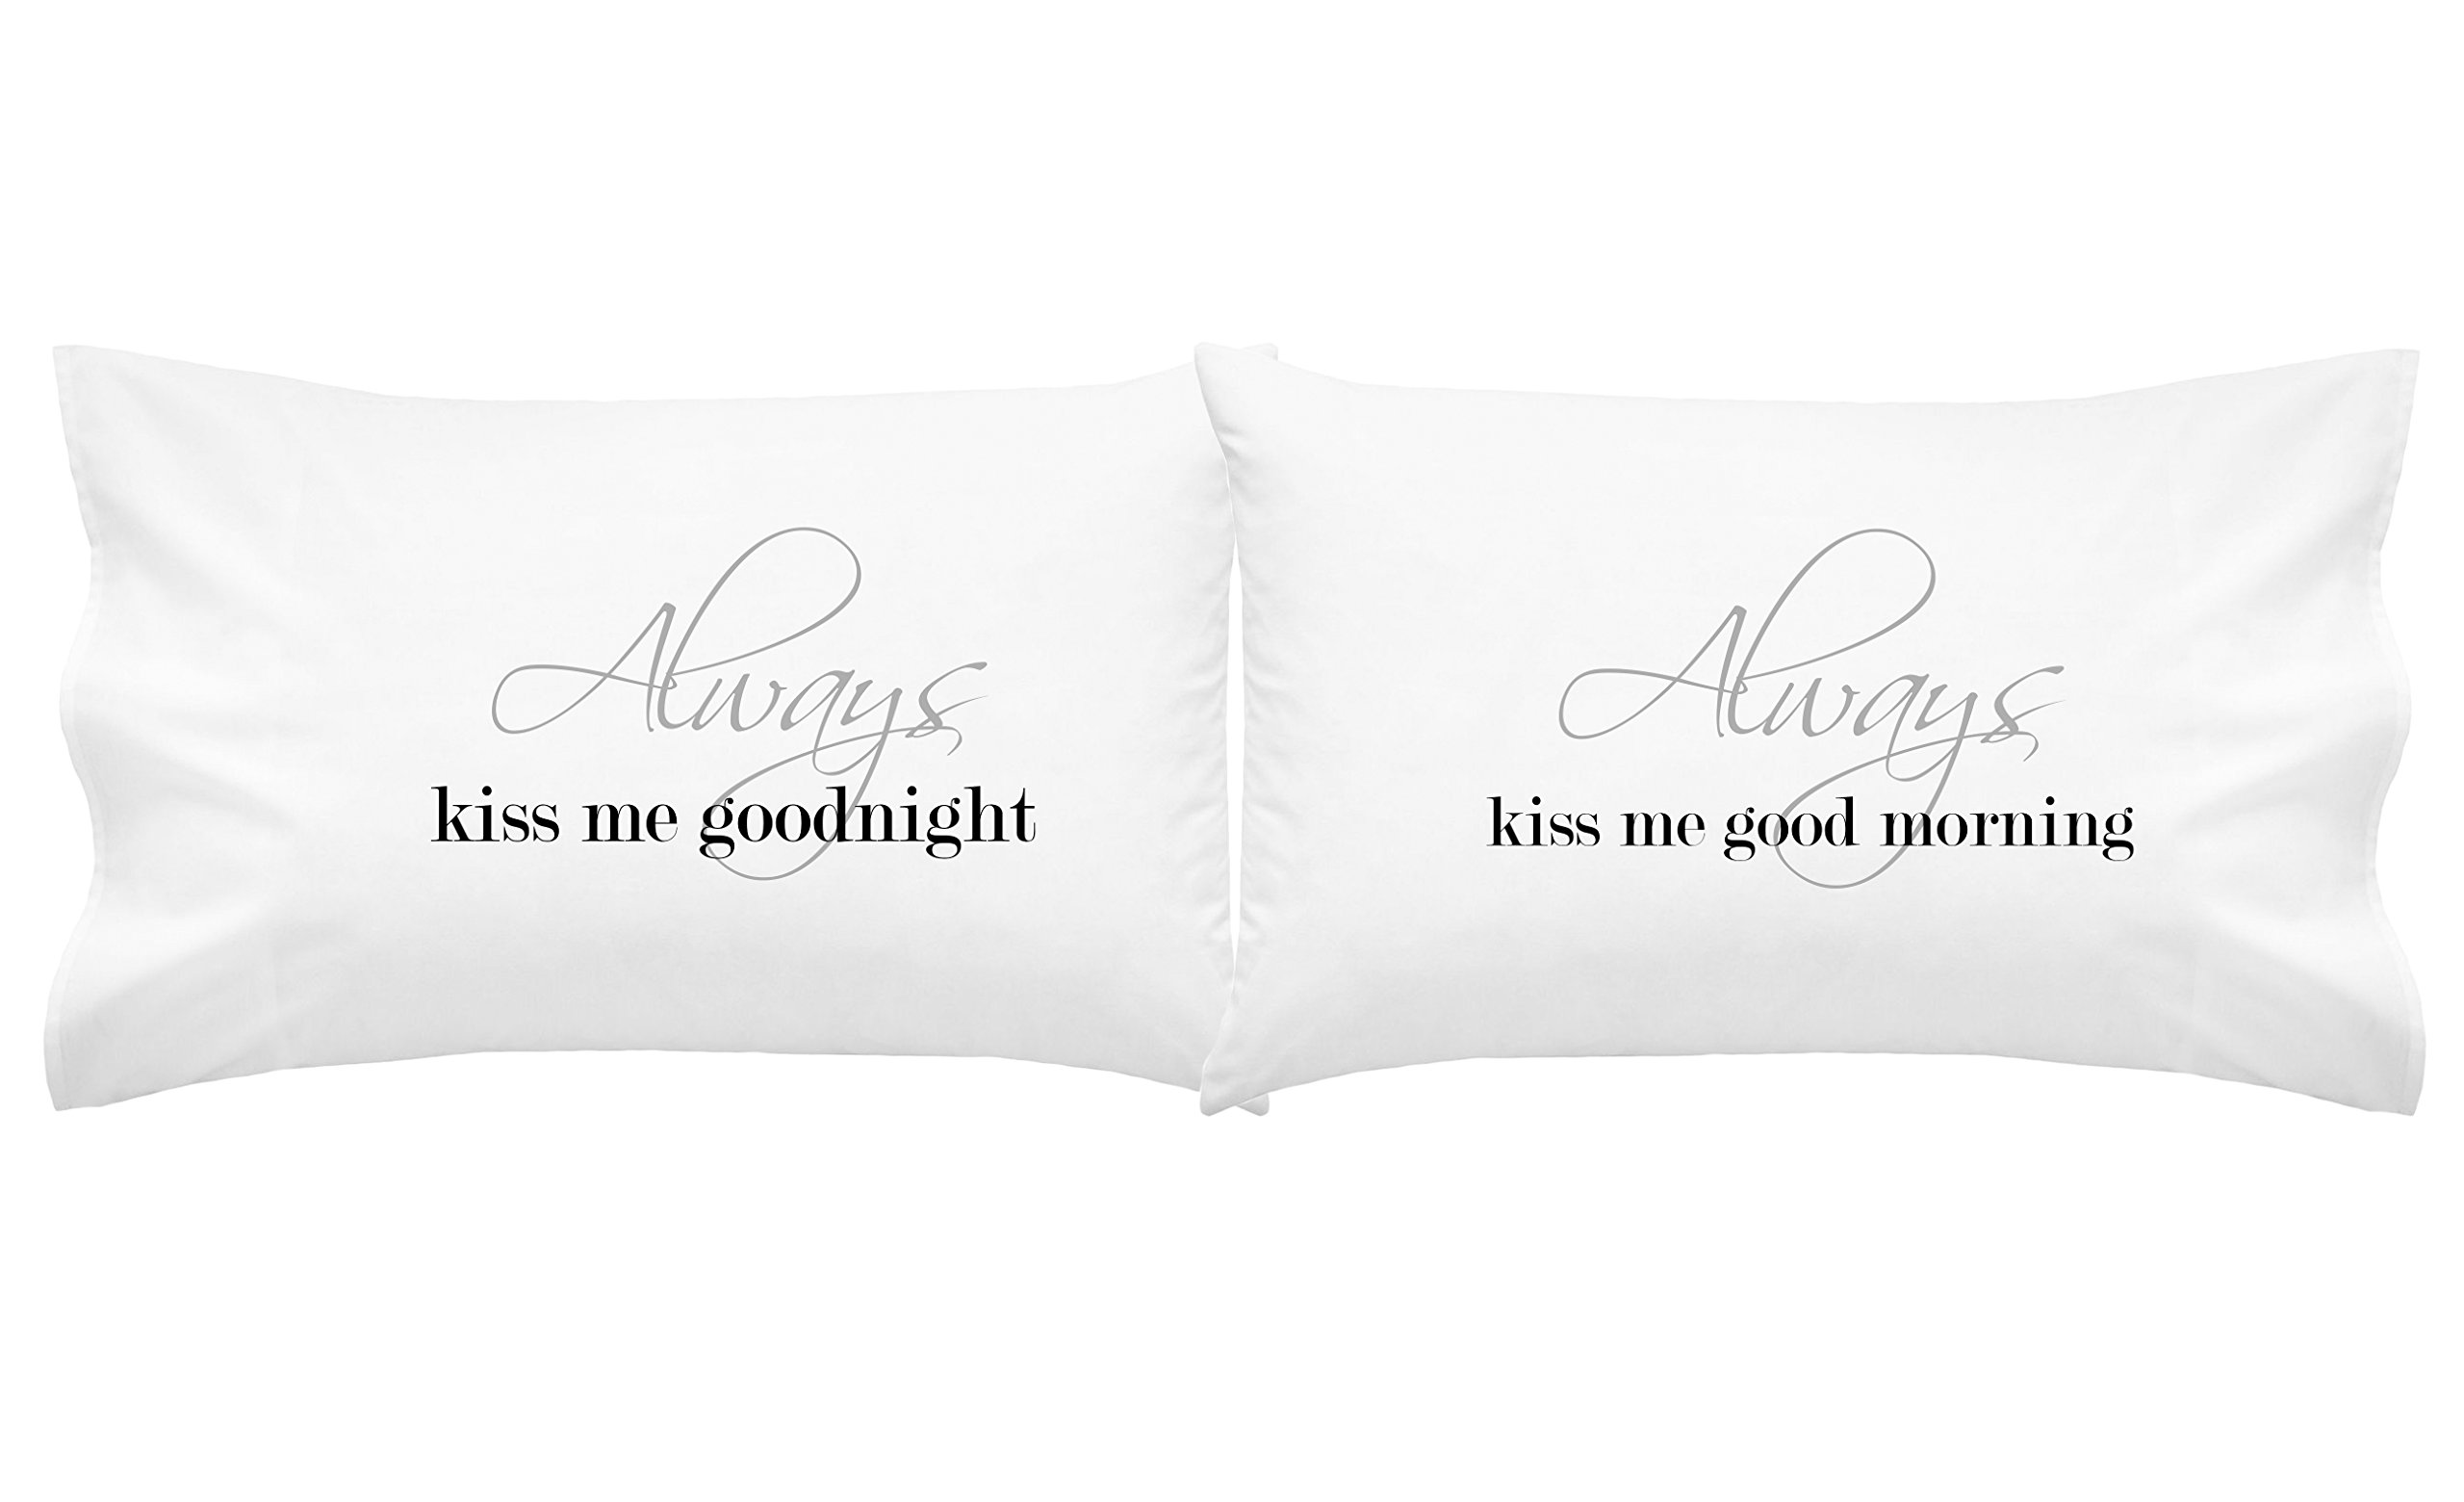 Oh, Susannah Always Kiss Me Goodnight Always Kiss Me Good Morning Couples Pillowcases (For Weddings, People in Love) (Two 20x30 Inches Standard/Queen Pillow Cases)